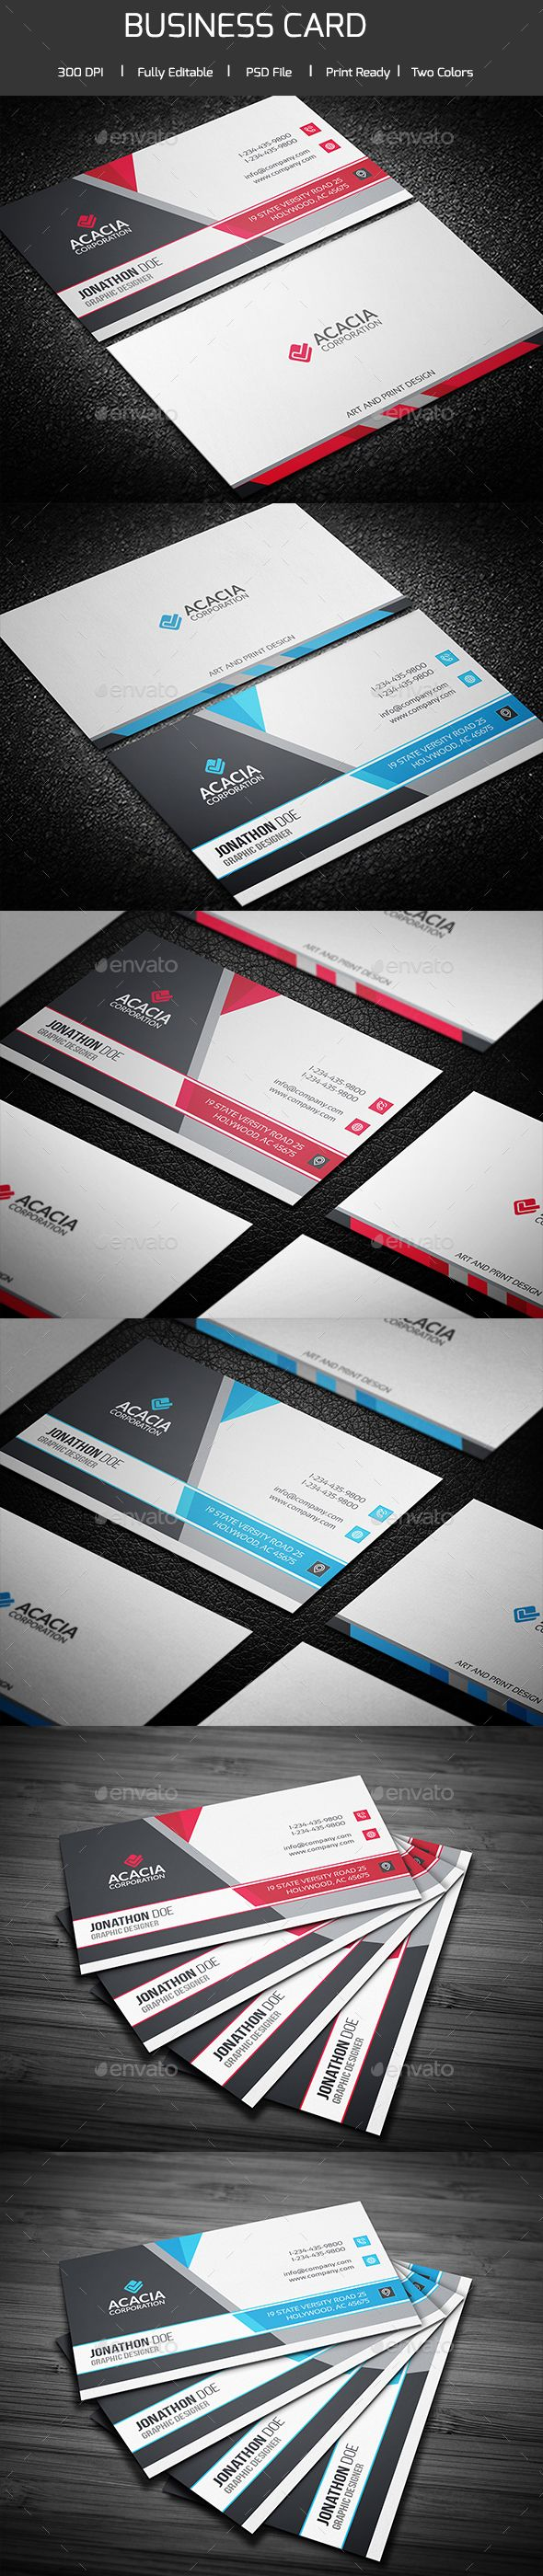 312 best business card images on pinterest business card 312 best business card images on pinterest business card templates visiting card templates and business card design alramifo Images